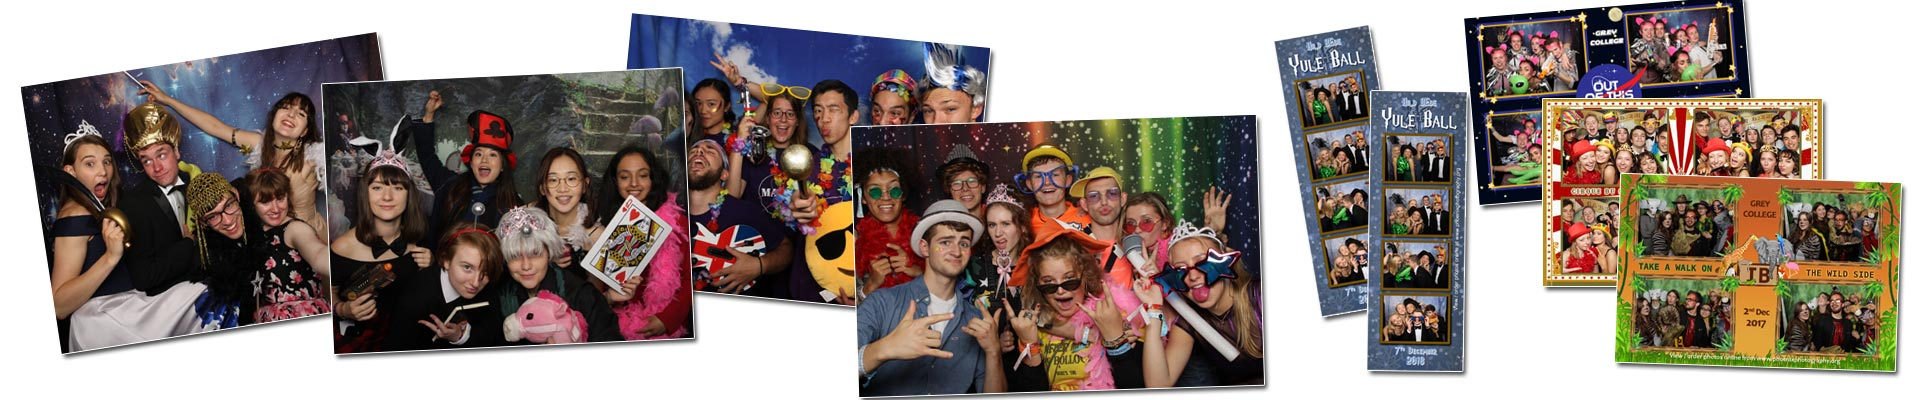 Standard Photobooth example photos and printouts